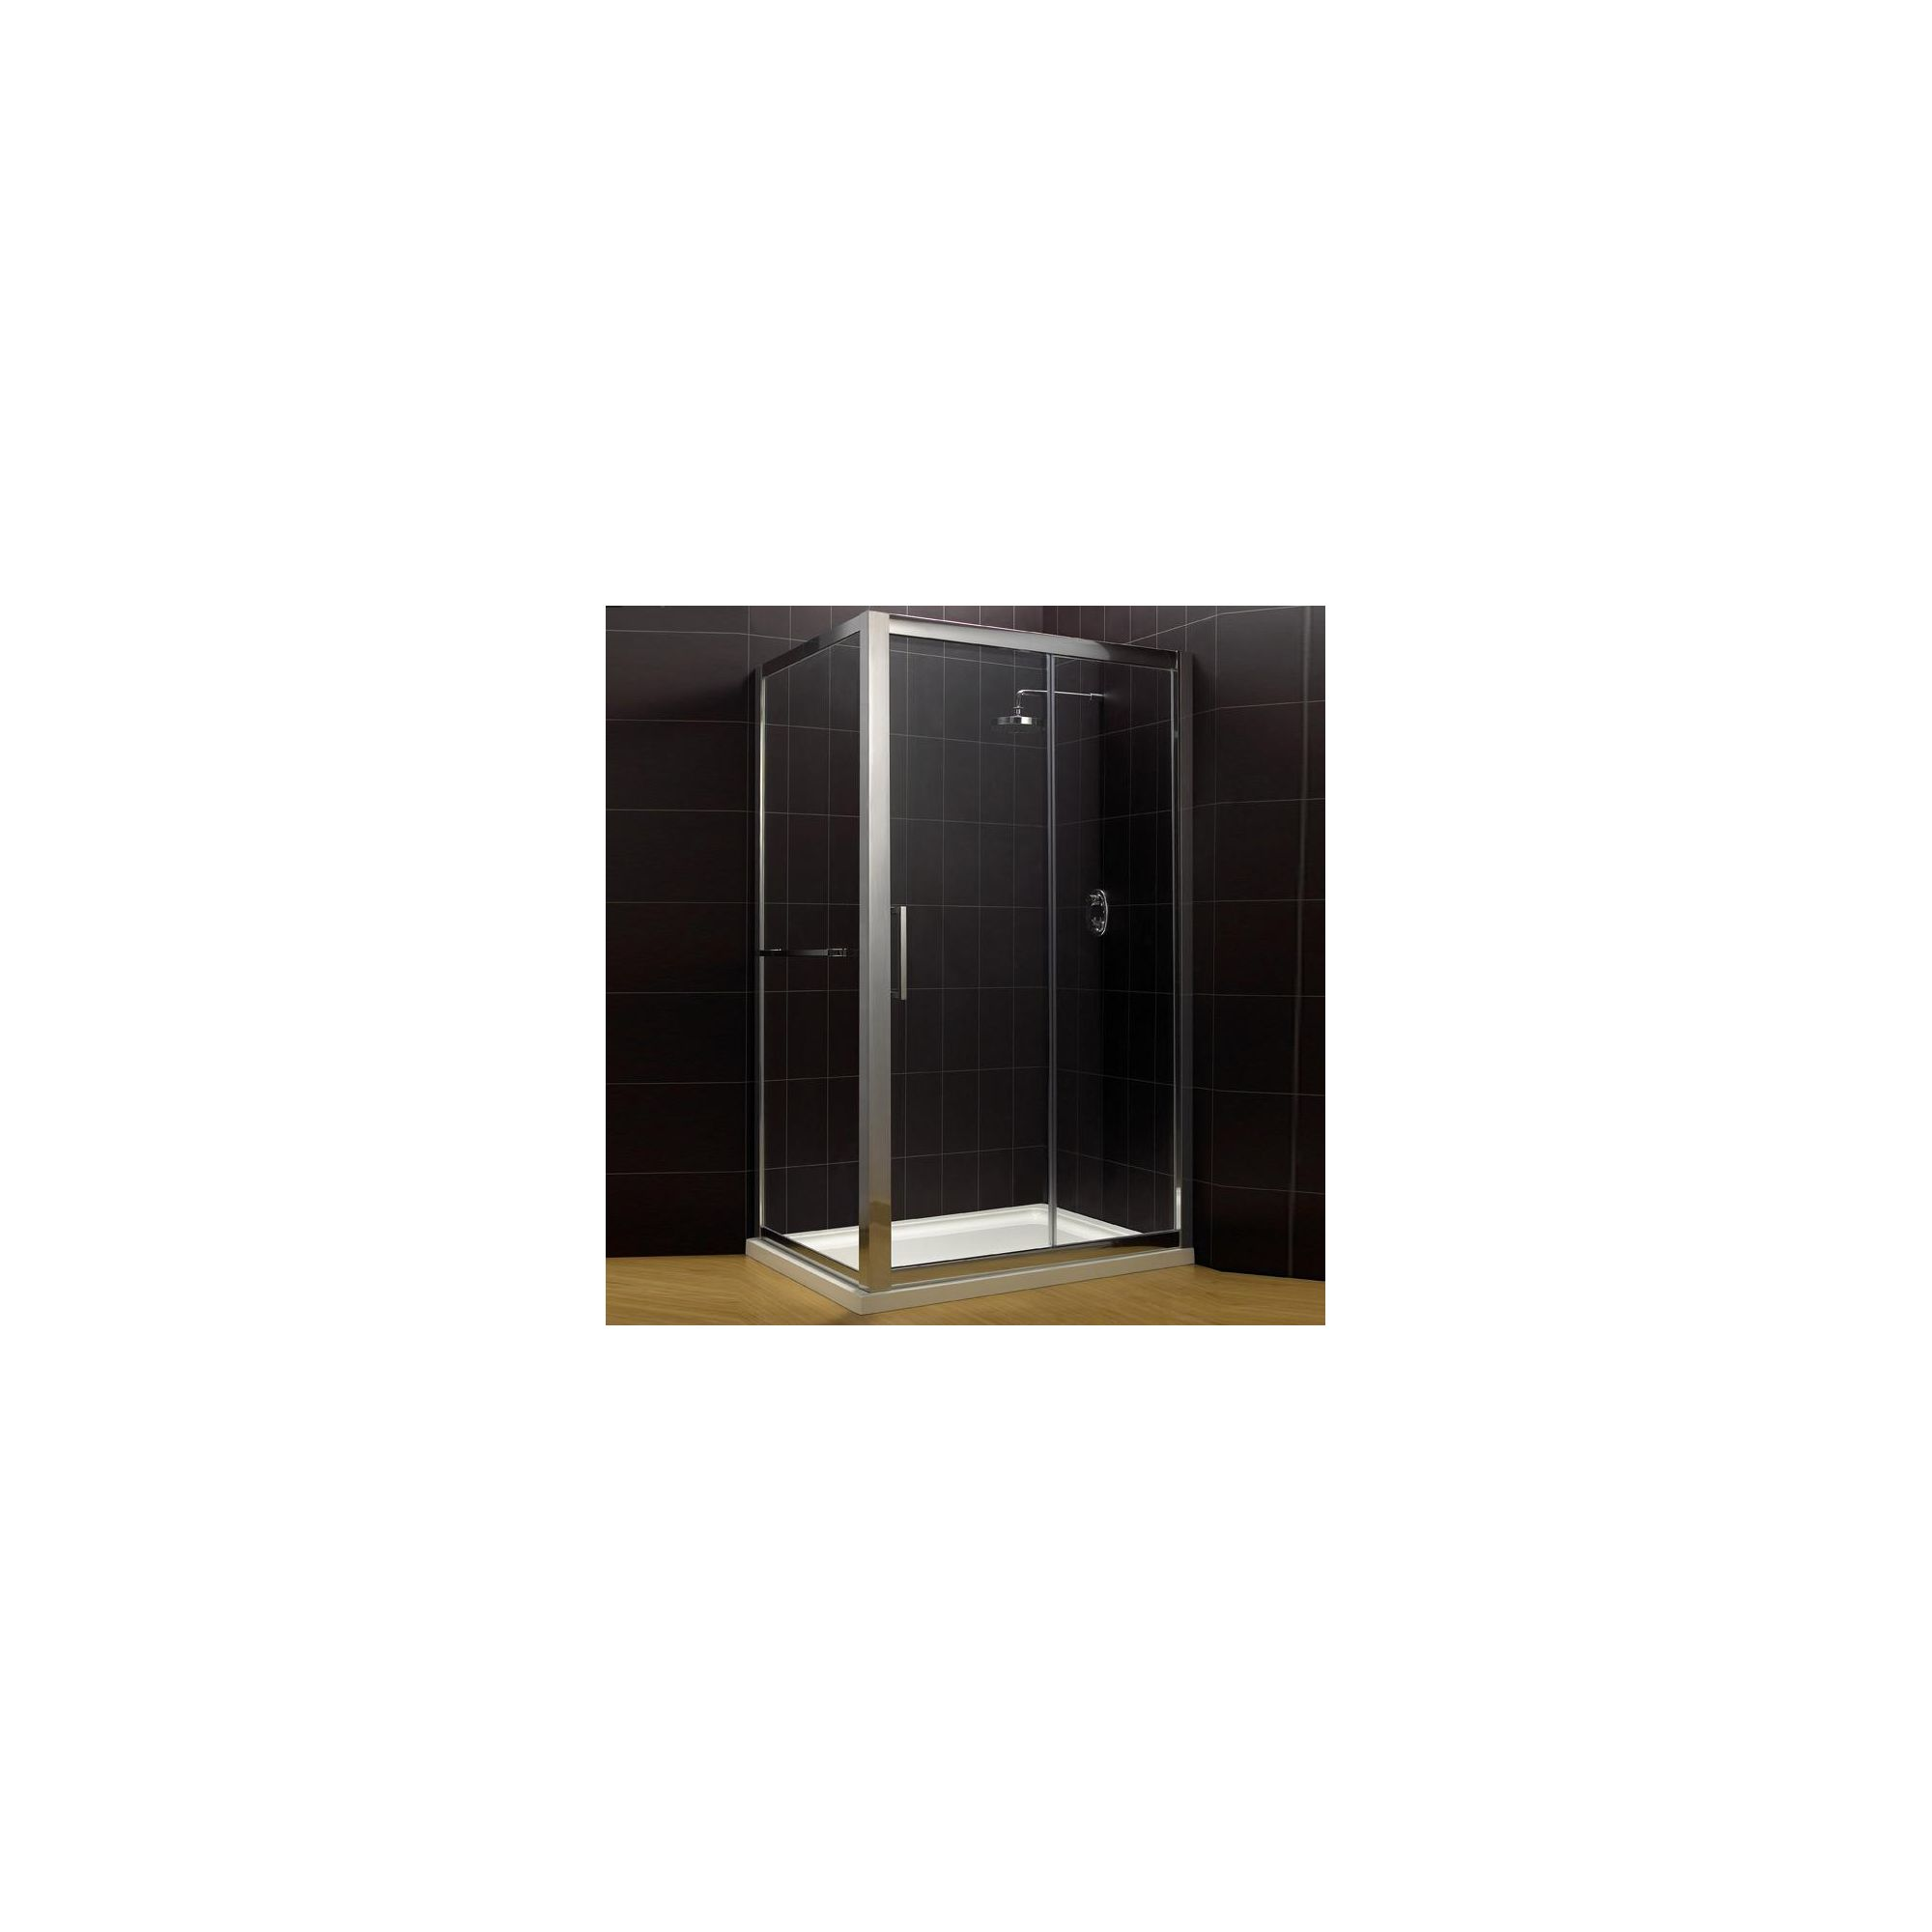 Duchy Supreme Silver Sliding Door Shower Enclosure with Towel Rail, 1000mm x 700mm, Standard Tray, 8mm Glass at Tesco Direct